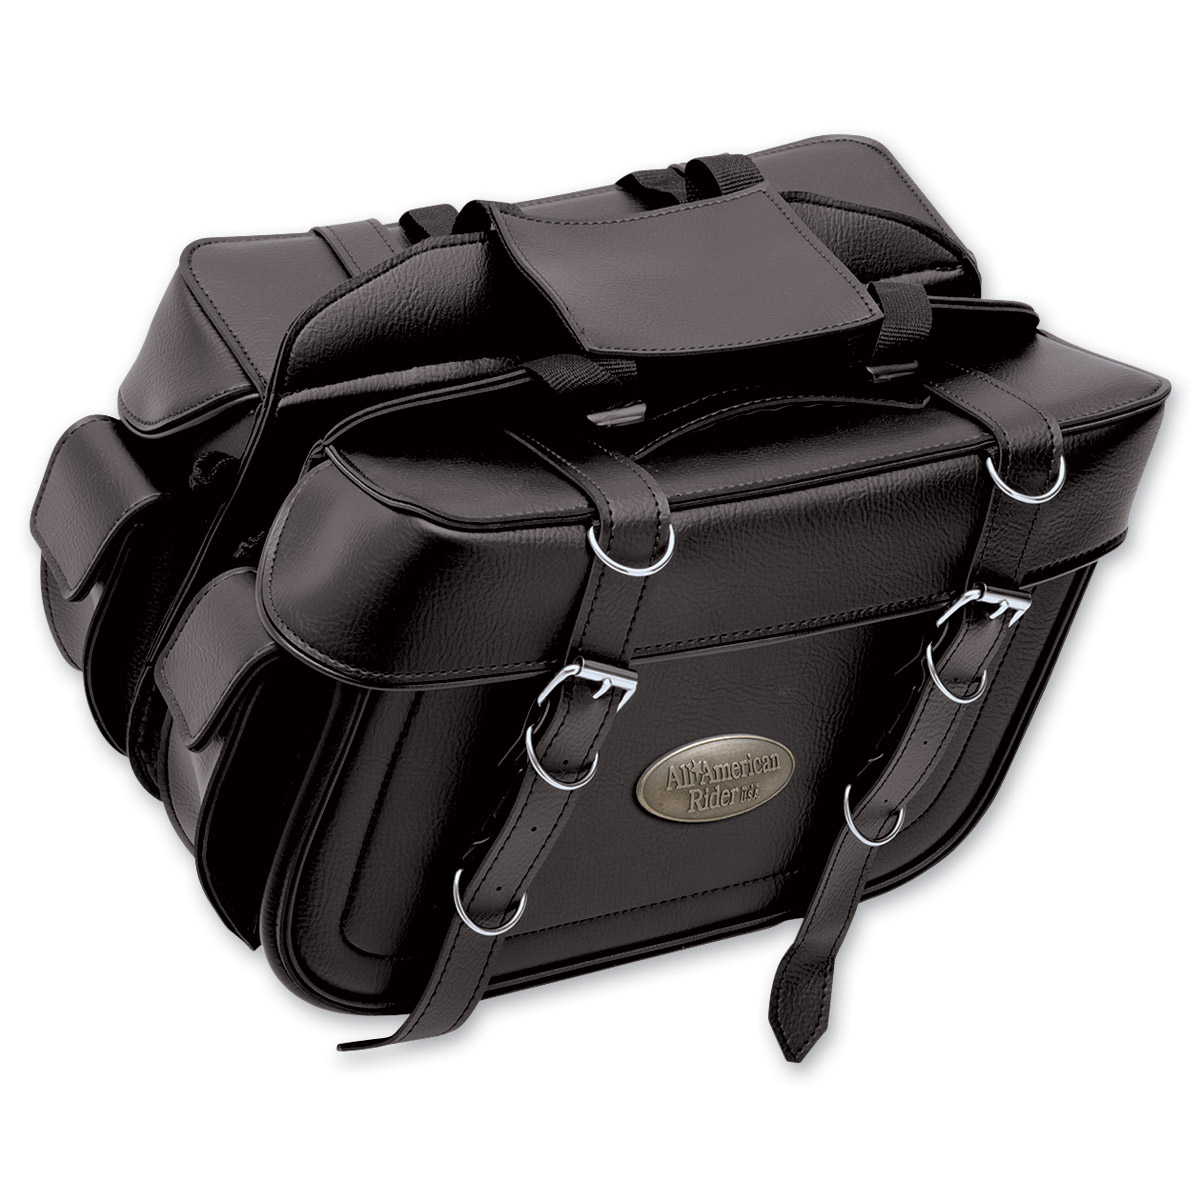 All American Rider Extra-Large Box-Style Detachable Slant Saddlebags